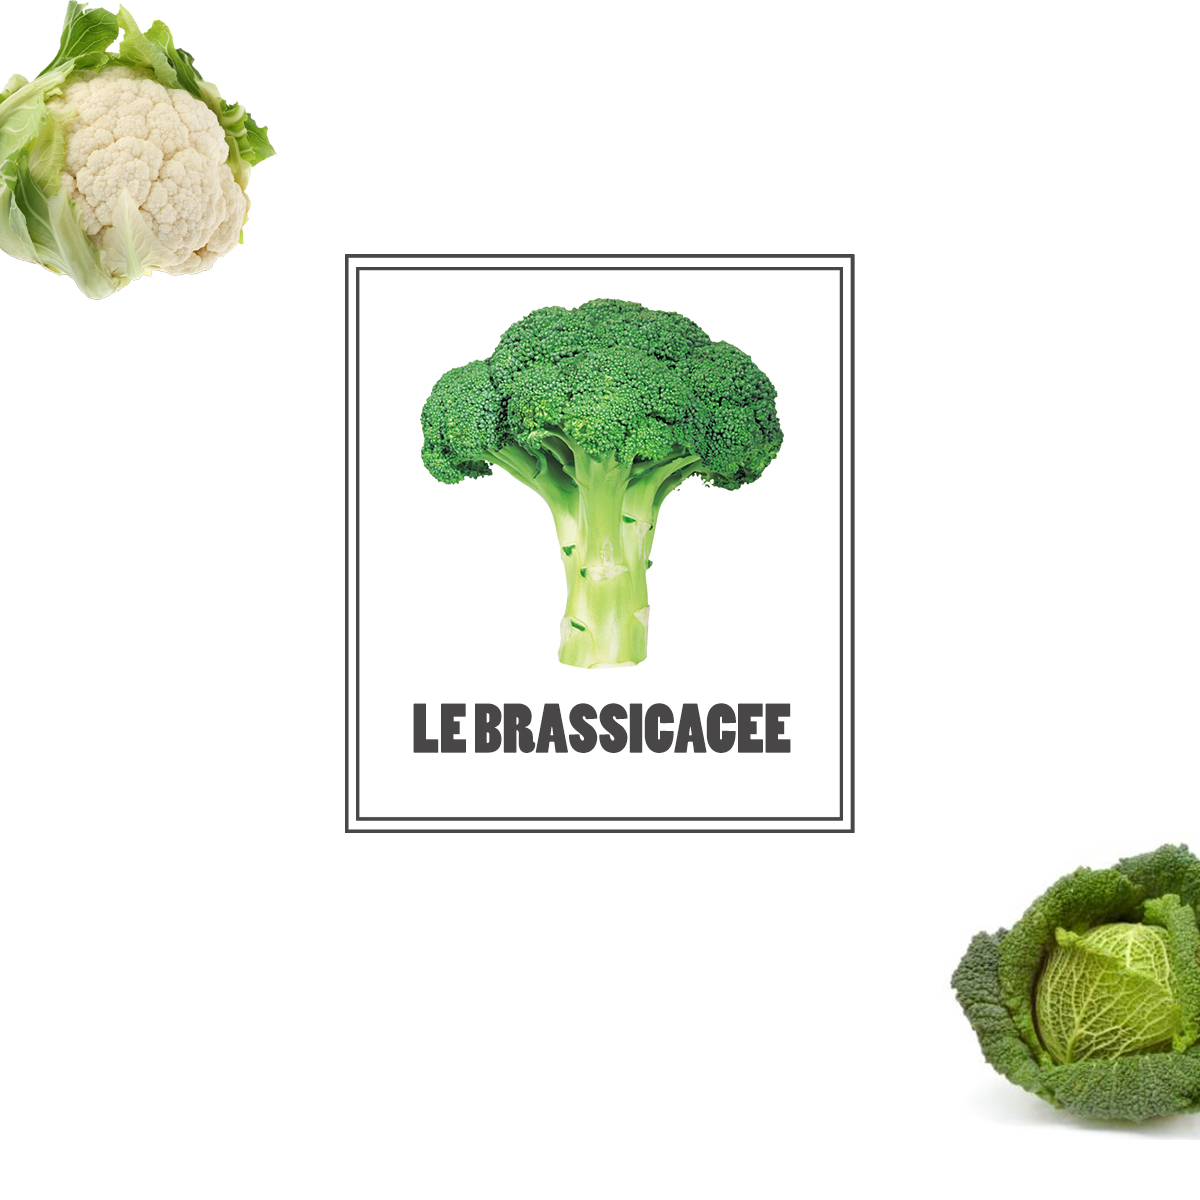 Le brassicacee